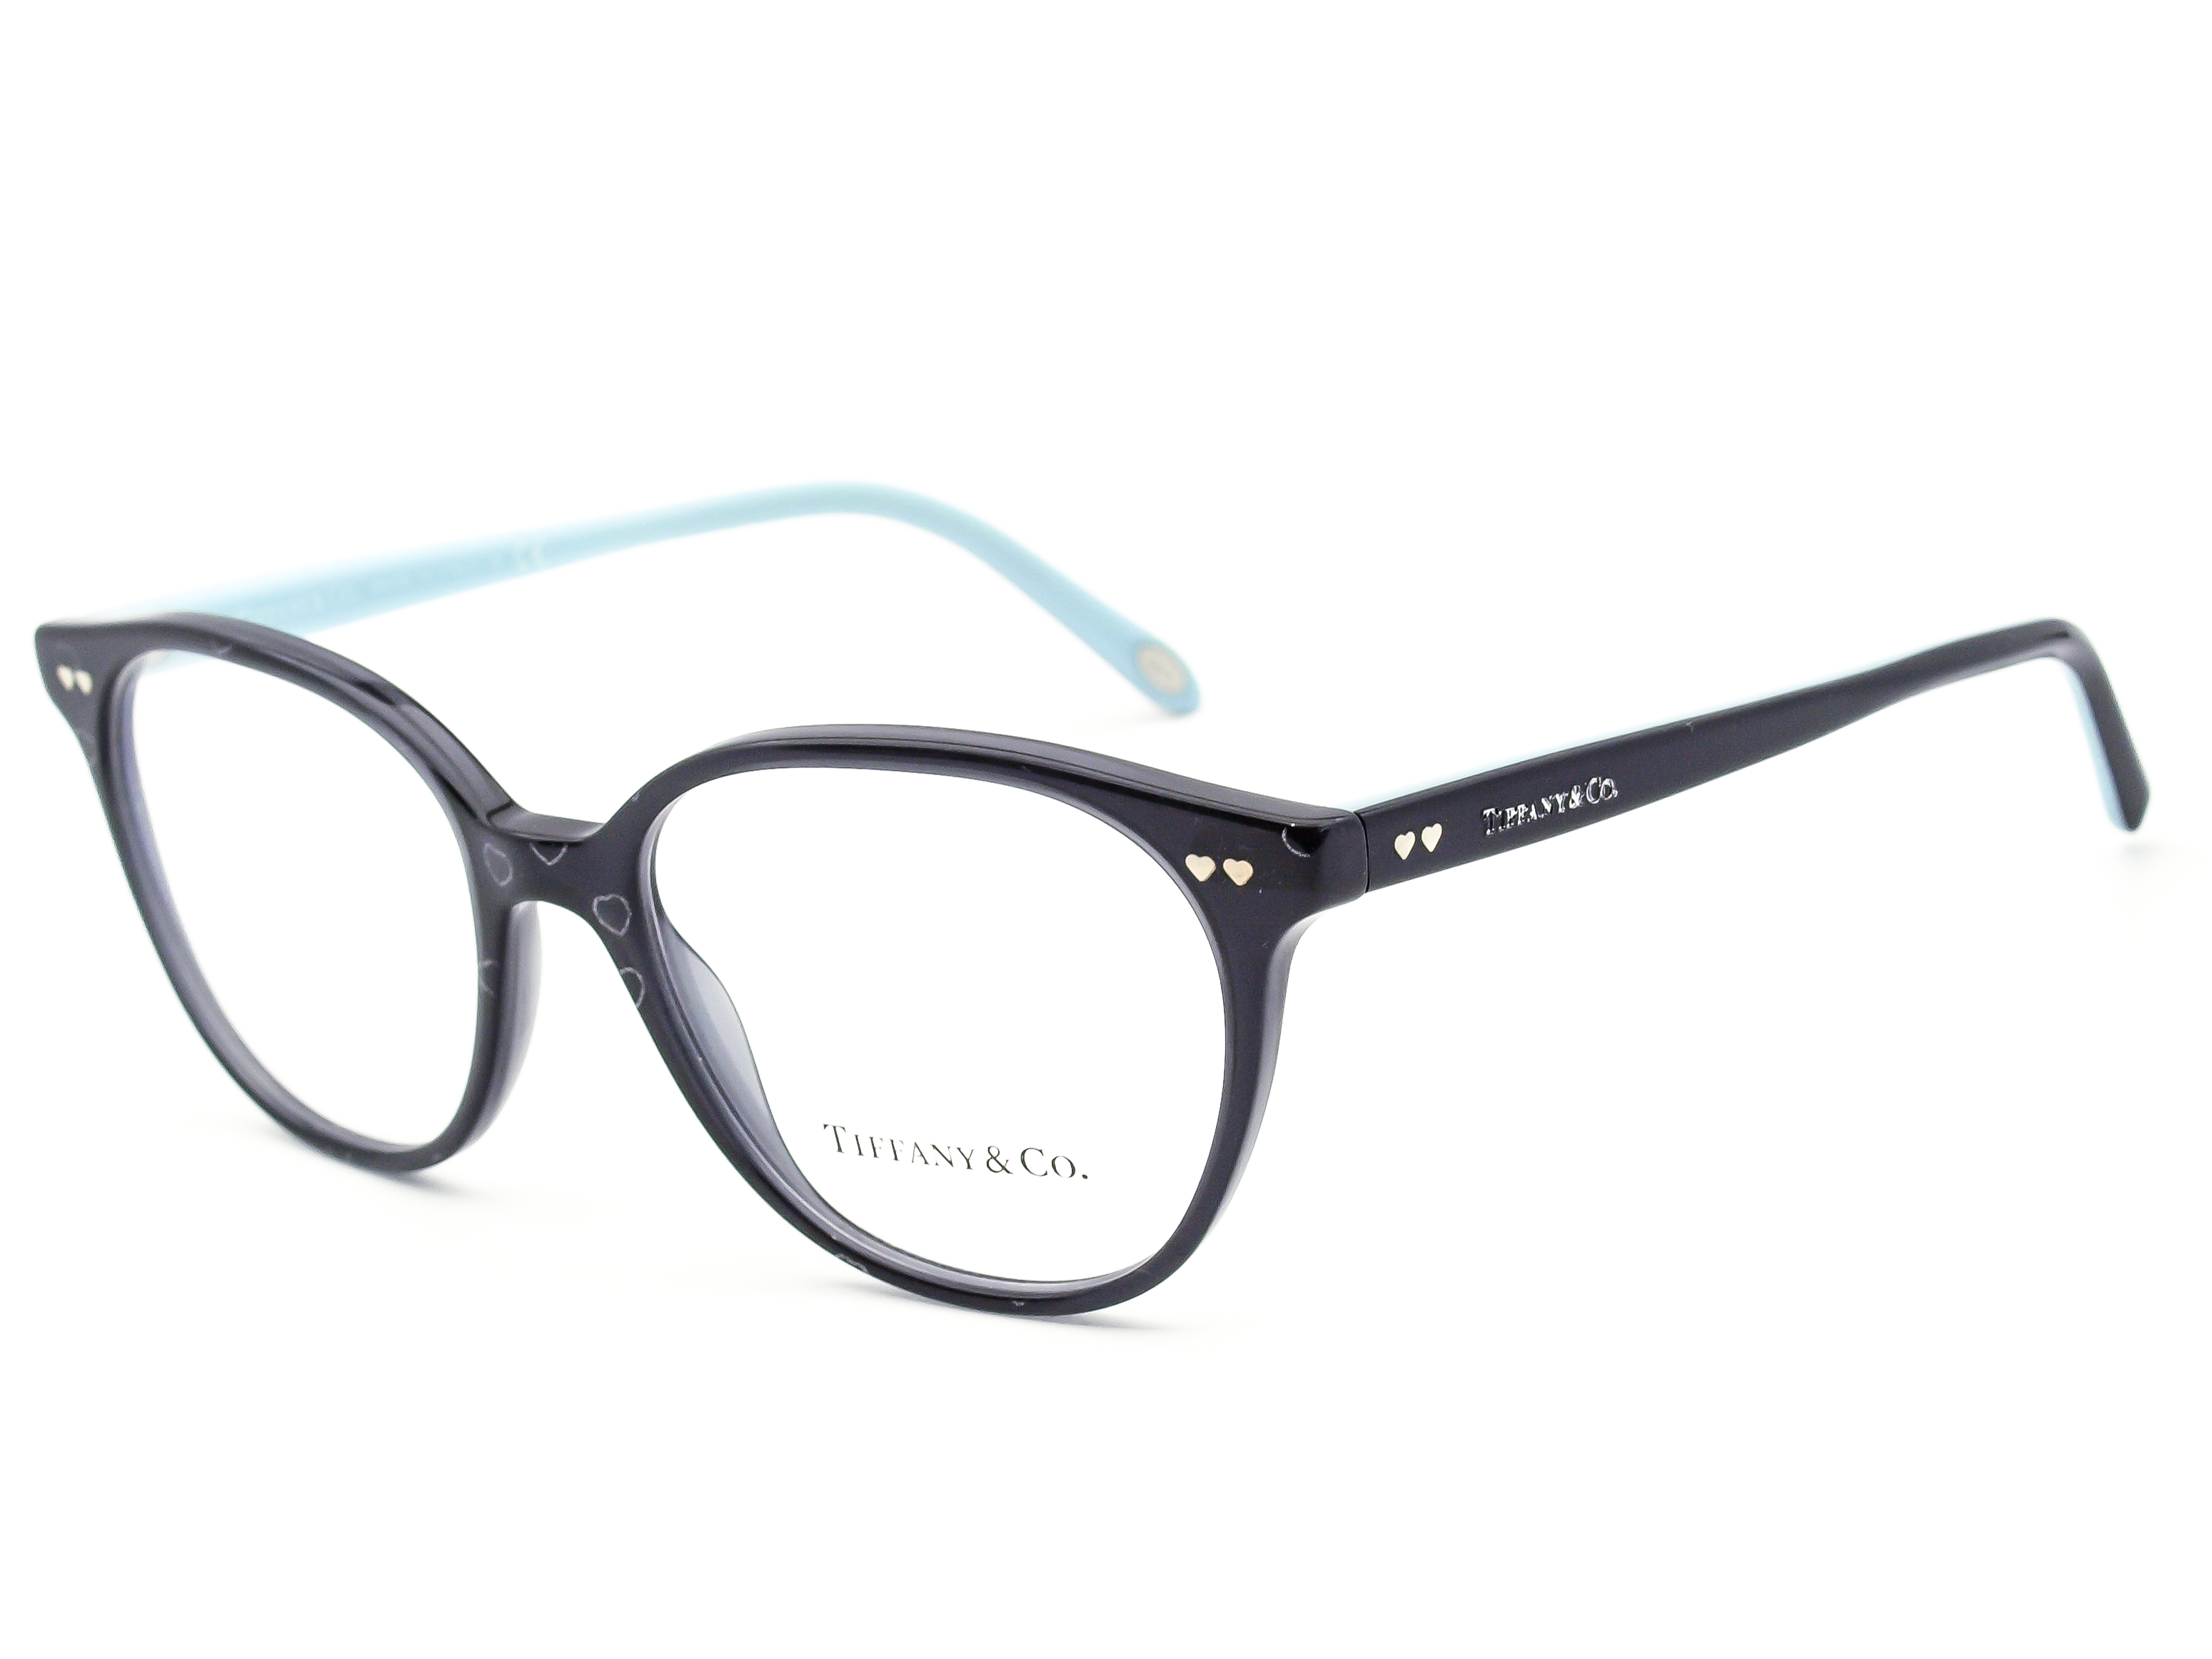 Tiffany & Co. TF 2154 8232 Eyeglasses